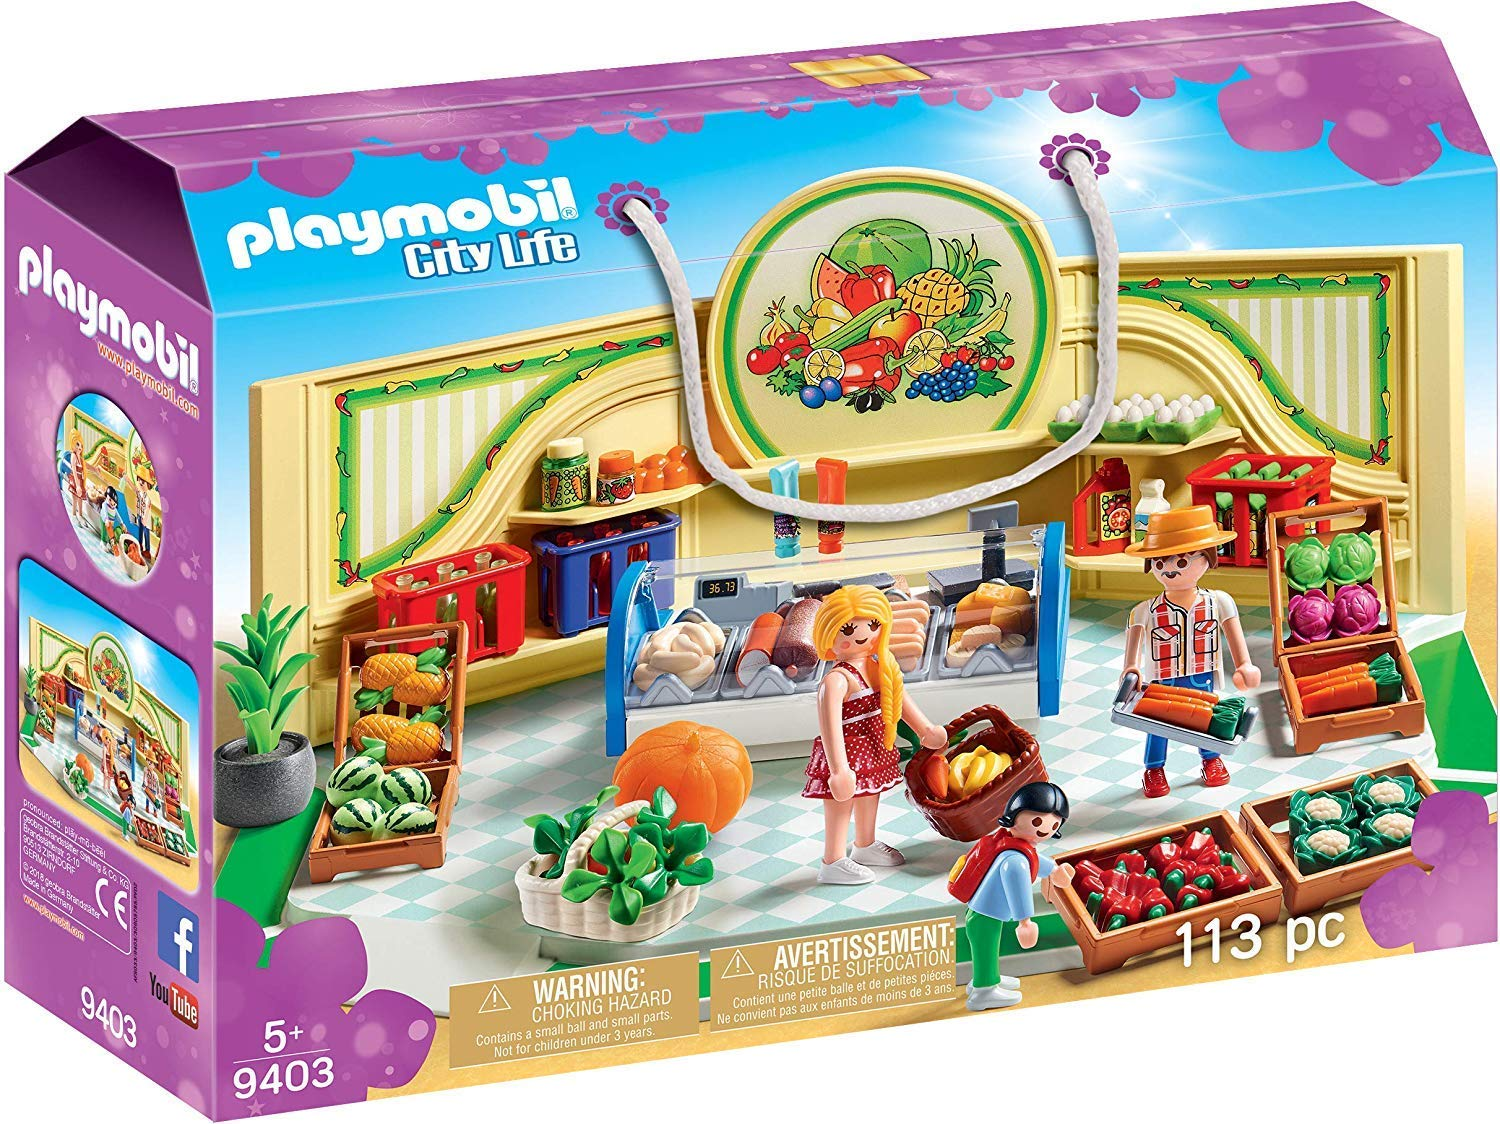 Amazon.com: Playmobil City Life Grocery Shop with Shoppers ...